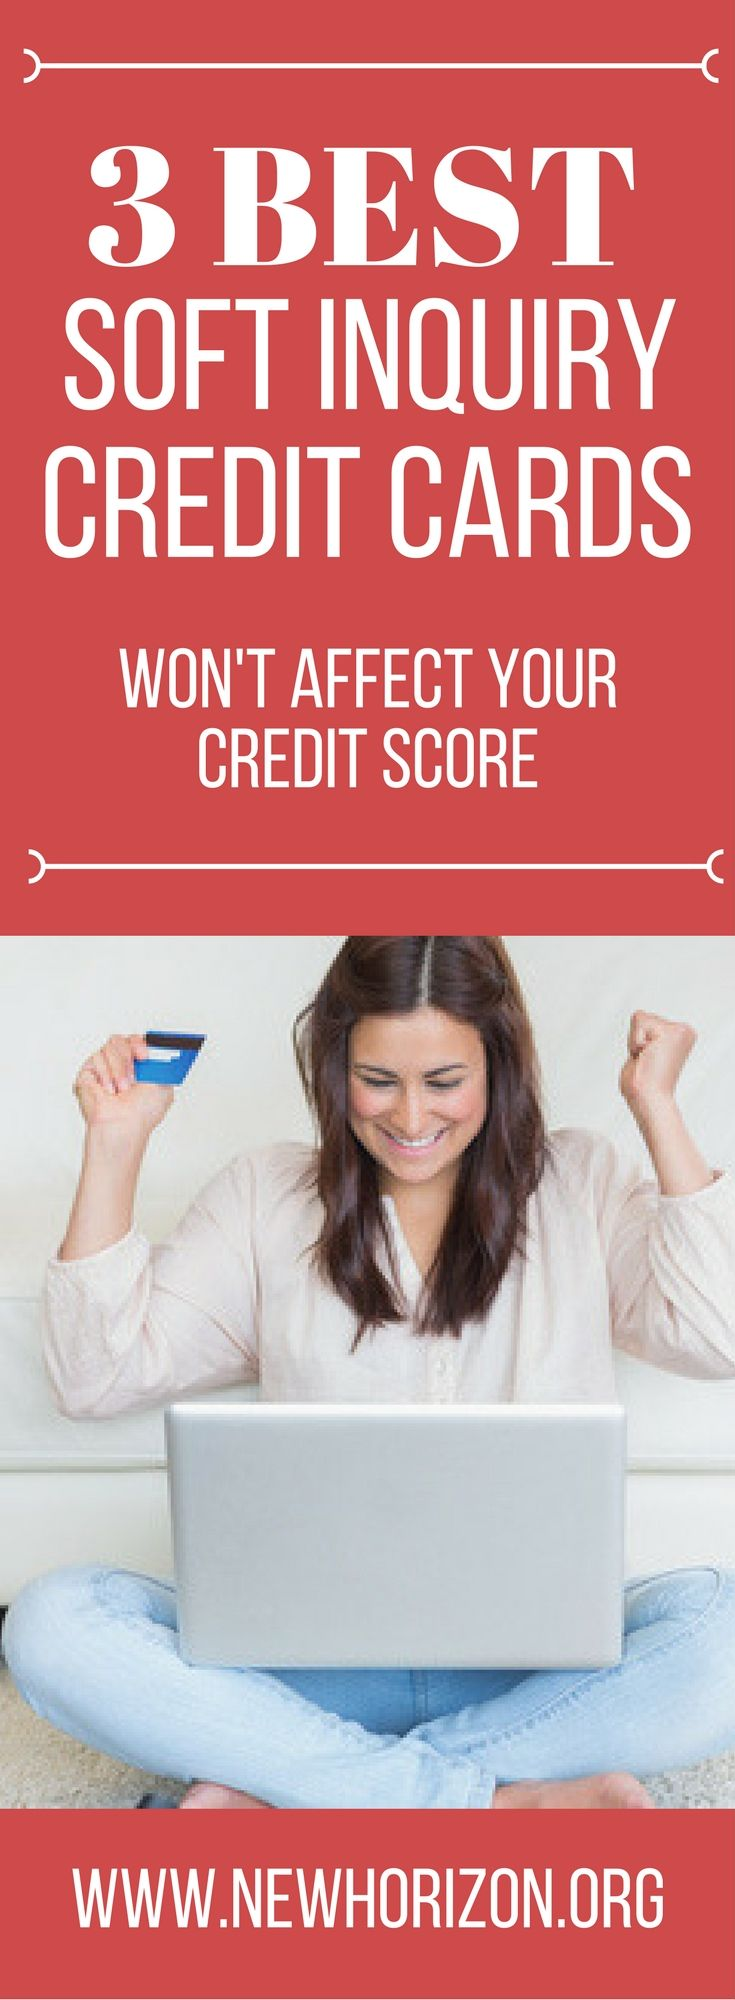 3 best soft inquiry credit cards - these are credit cards that won't affect your credit score when you apply because of the soft inquiry they make on your credit score.